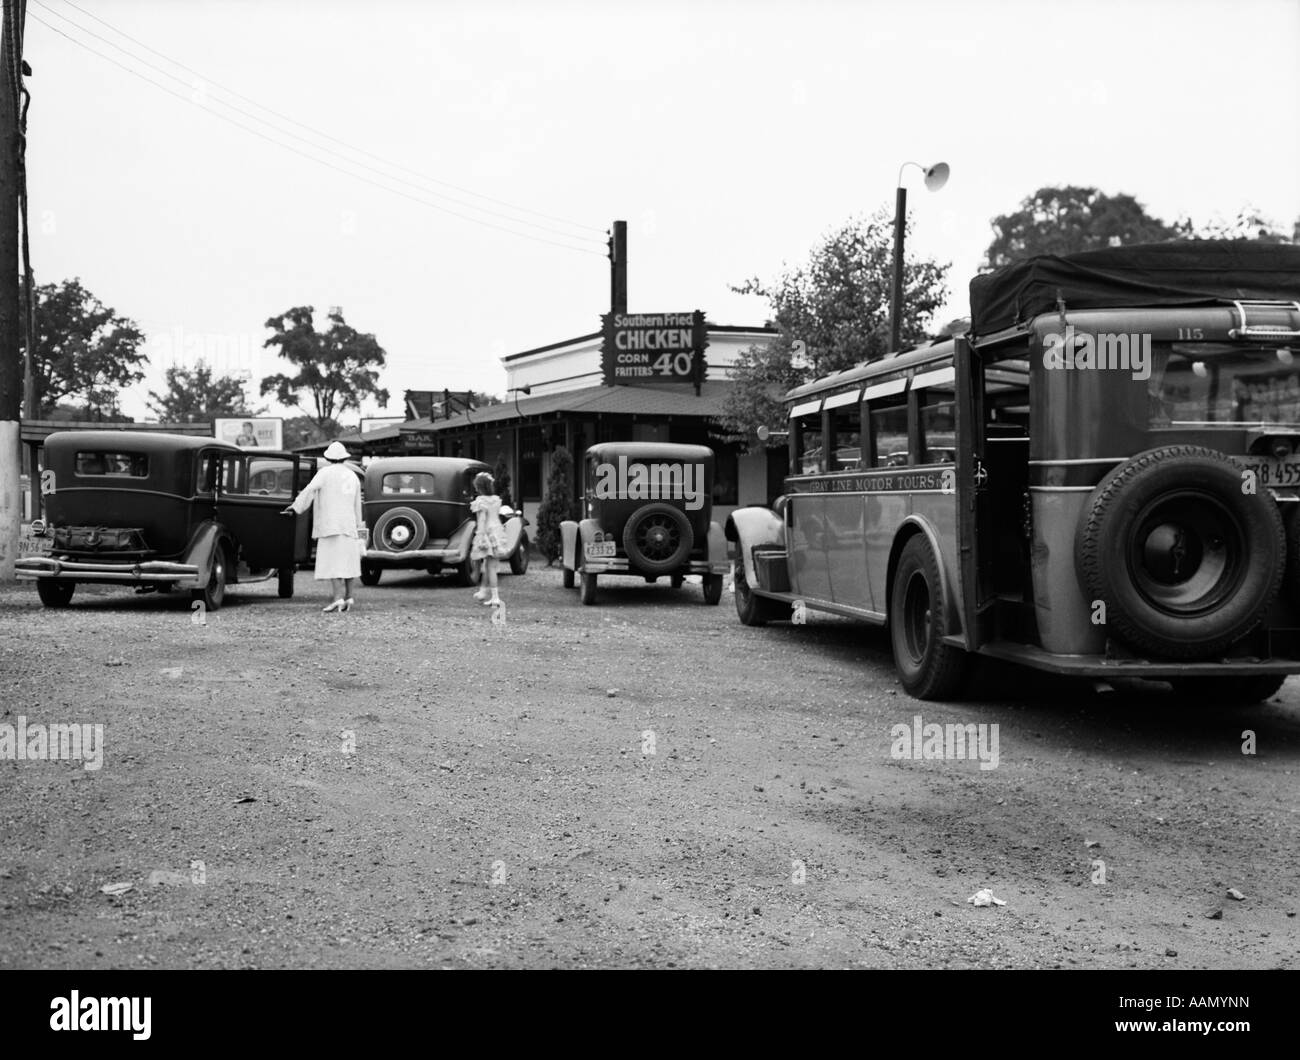 1930s ROADSIDE DINER RESTAURANT BUS STOP WOMAN GIRL IN PARKING LOT CARS CHICKEN 40 CENTS CROTON NEW YORK JULY 5 - Stock Image